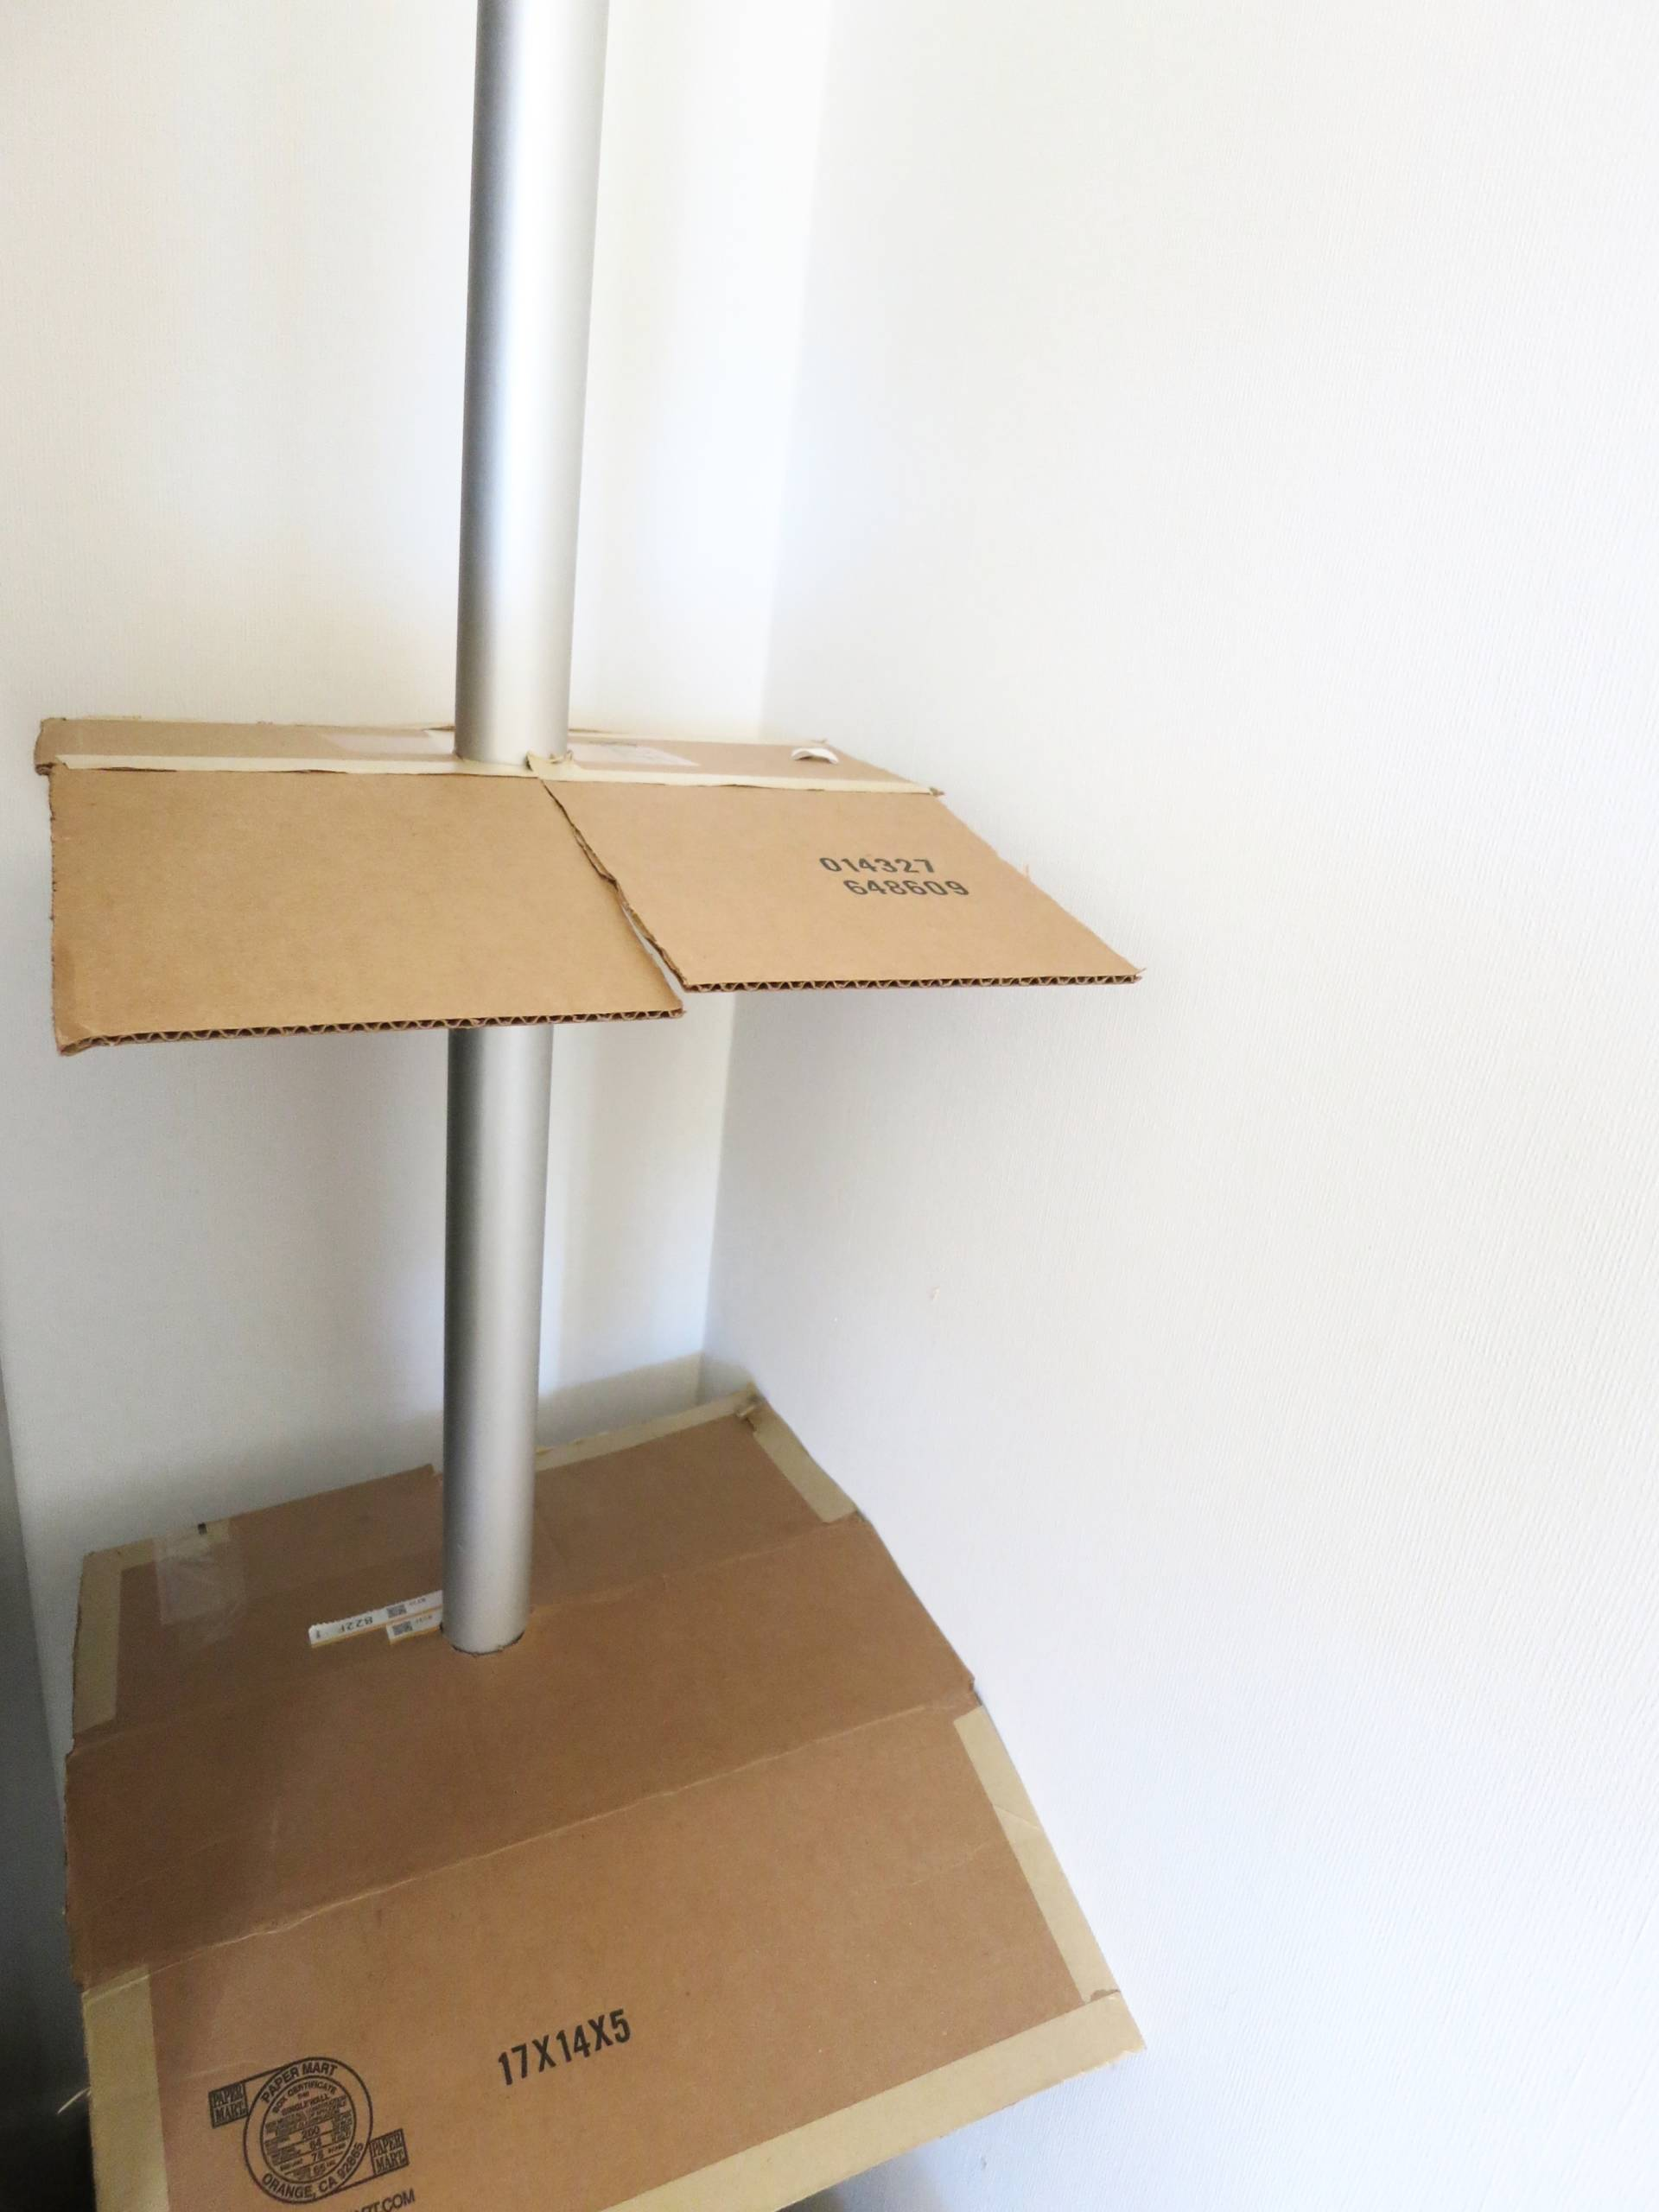 Ikea Cat Tree Diy: Ikea Stolmen Hack Cat Tree | Meow Lifestyle